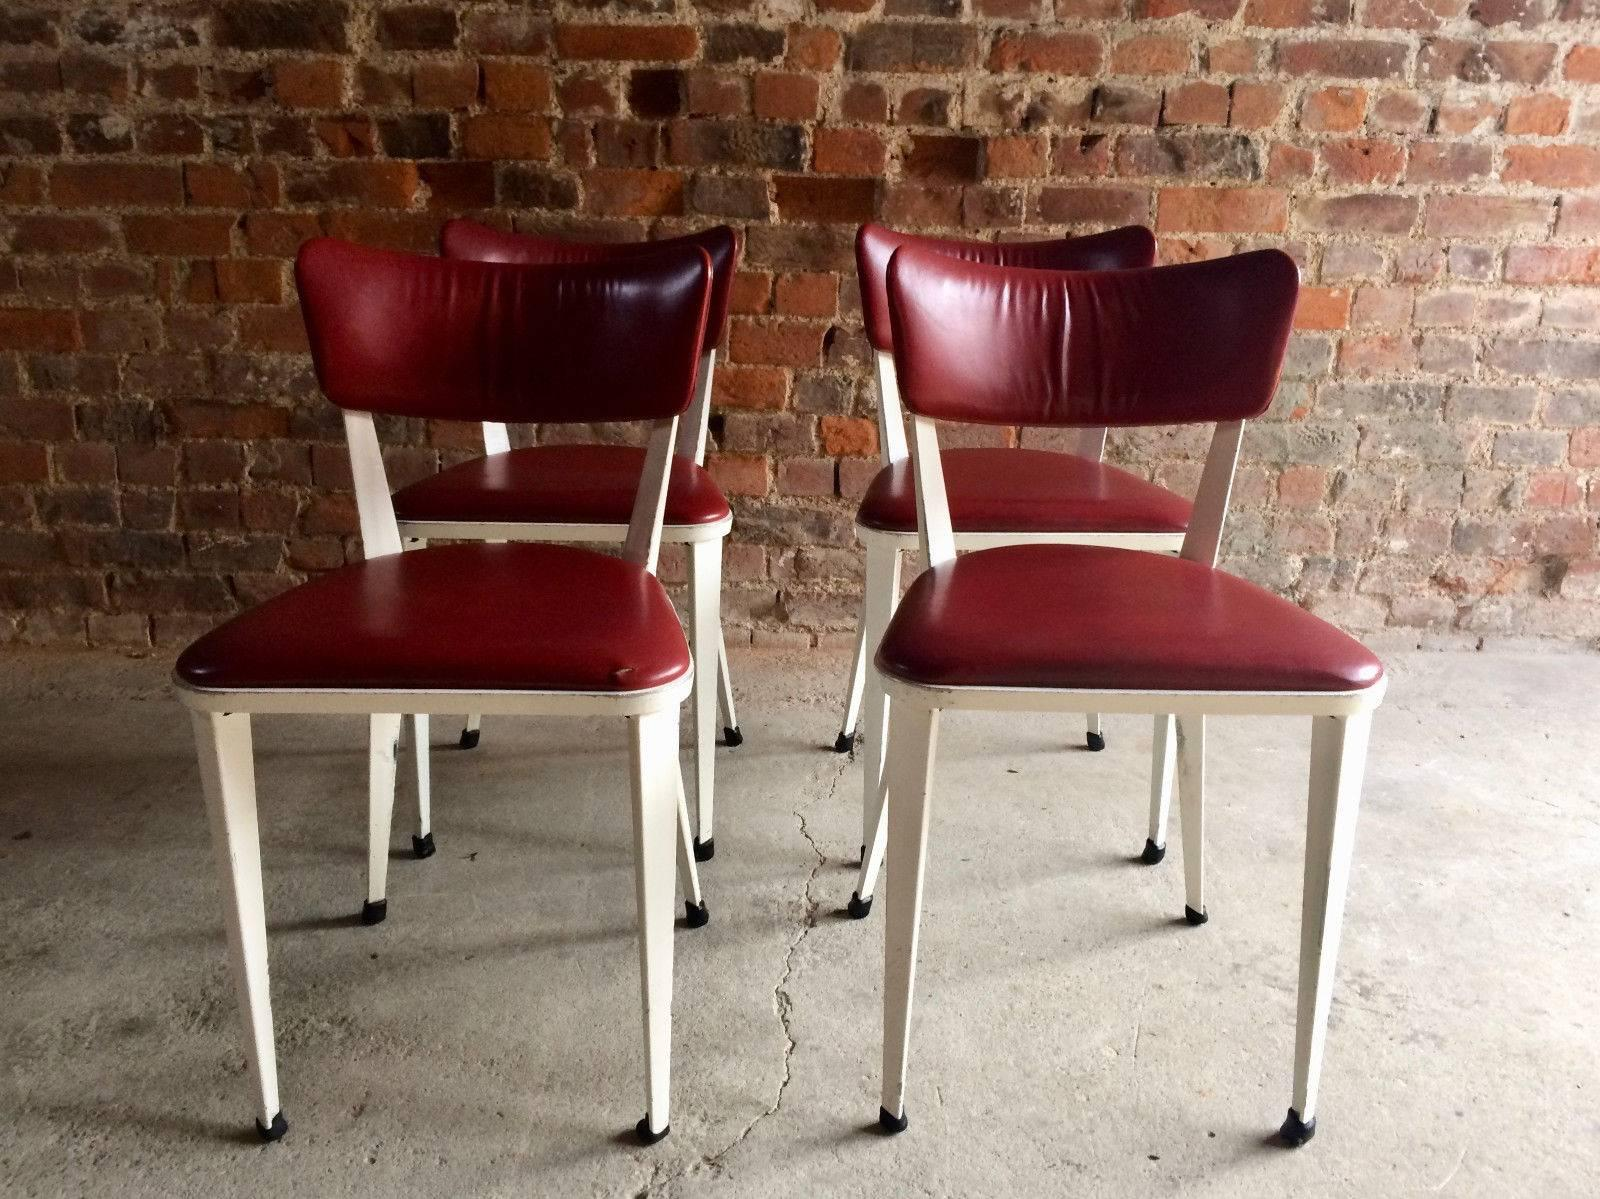 Midcentury Ernest Race Set Of Four BA3 Dining Chairs White Cherry Red  Leather In Good Condition